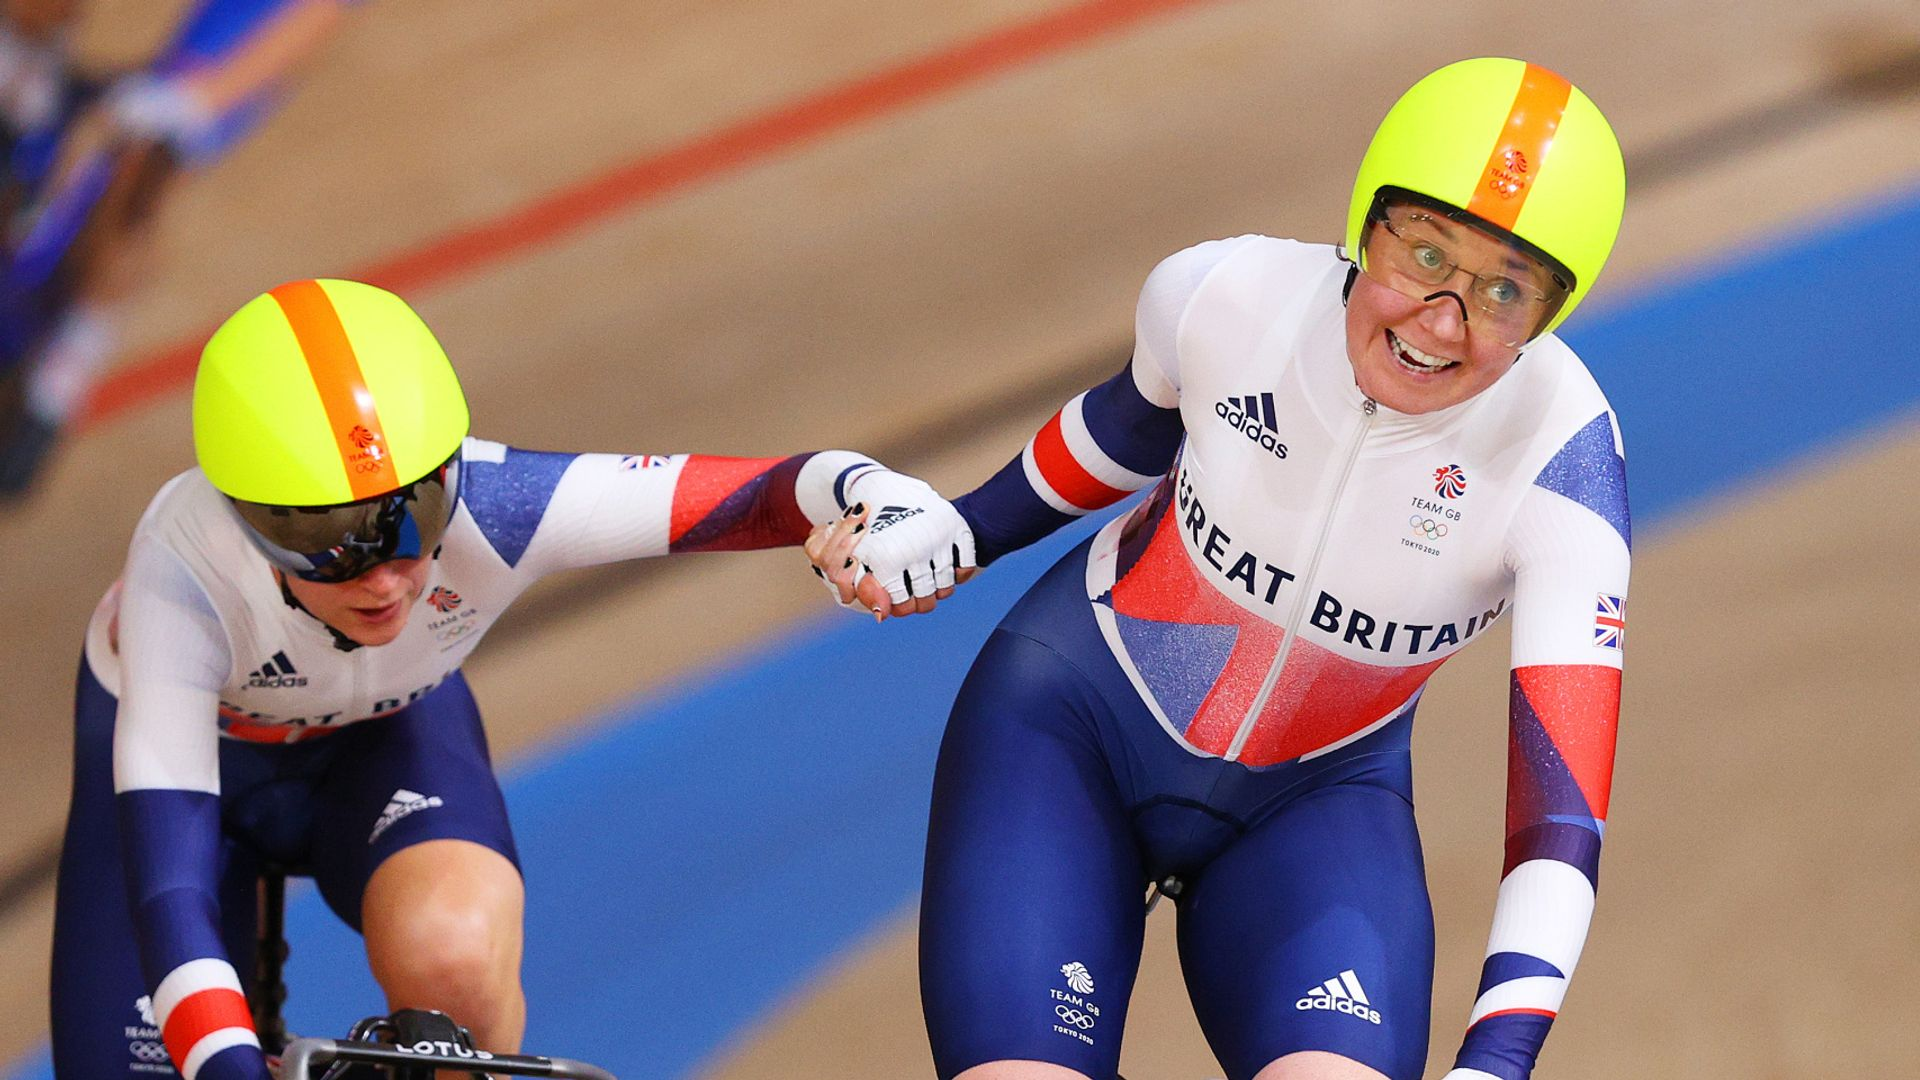 Archibald and Kenny win cycling gold for Team GB